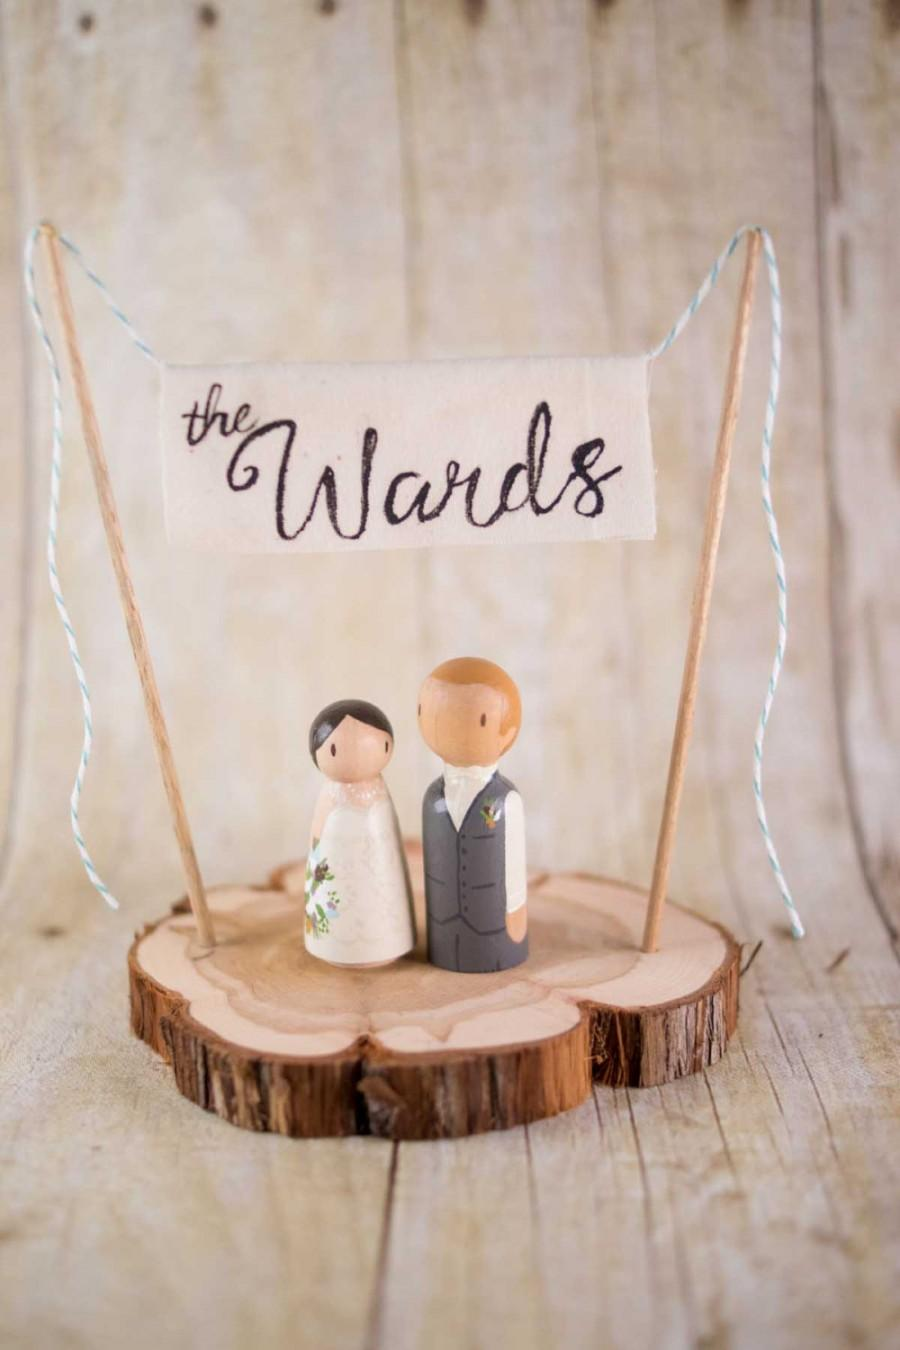 Elegant Custom Wedding Cake Toppers